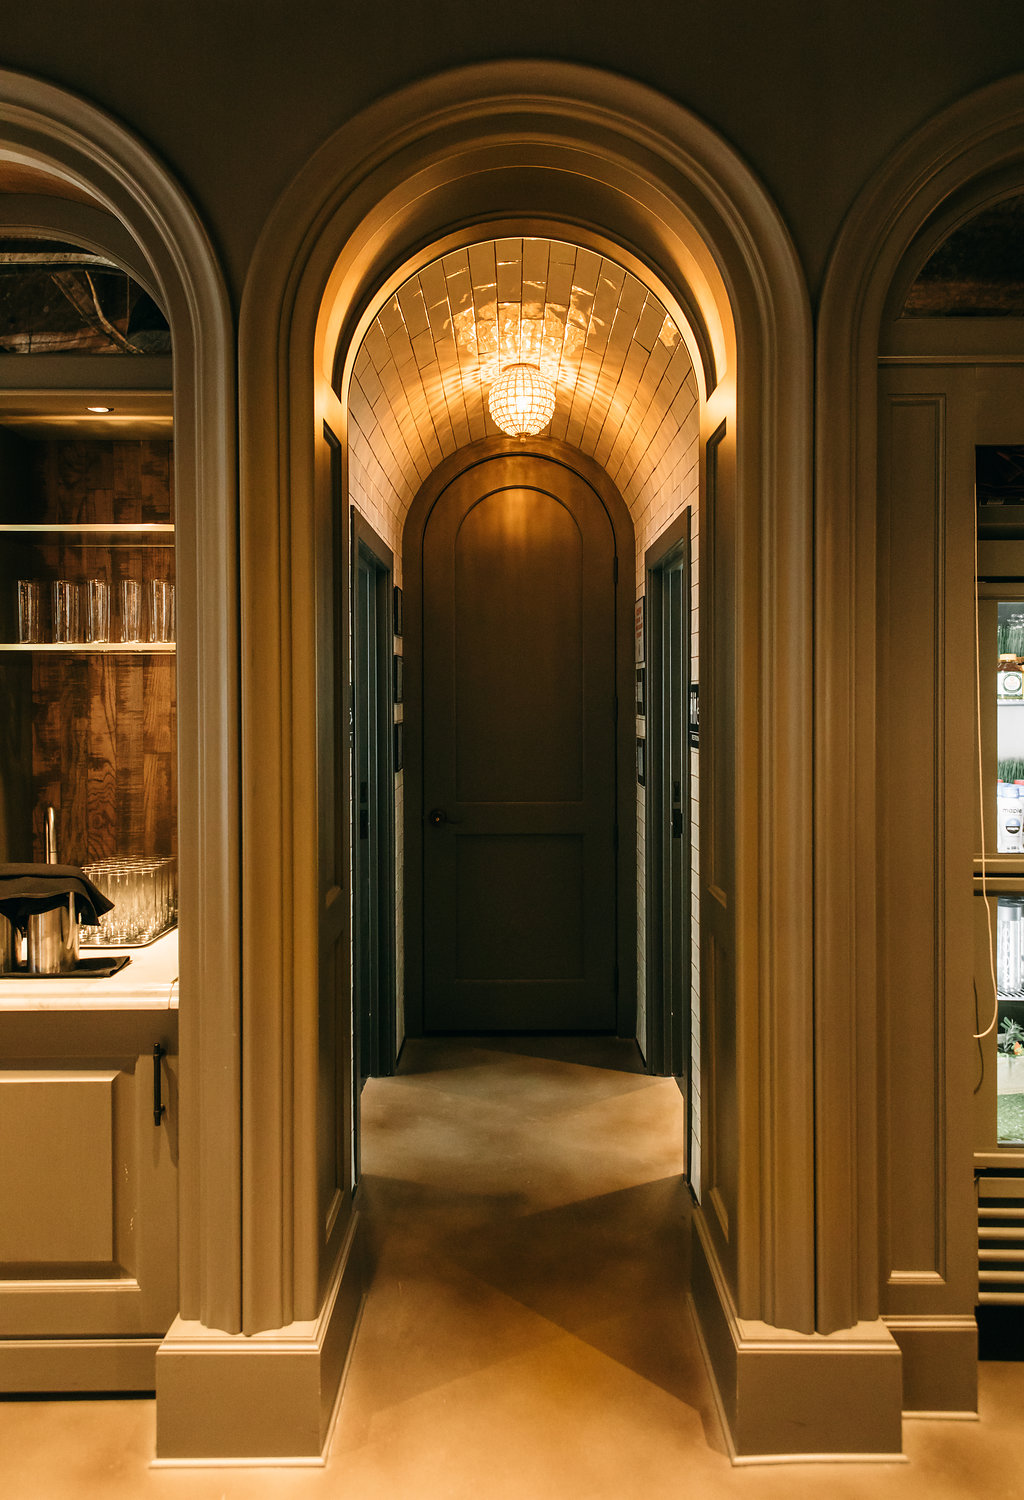 Who is d+k? – Chicago based Architecture & Interiors Firm